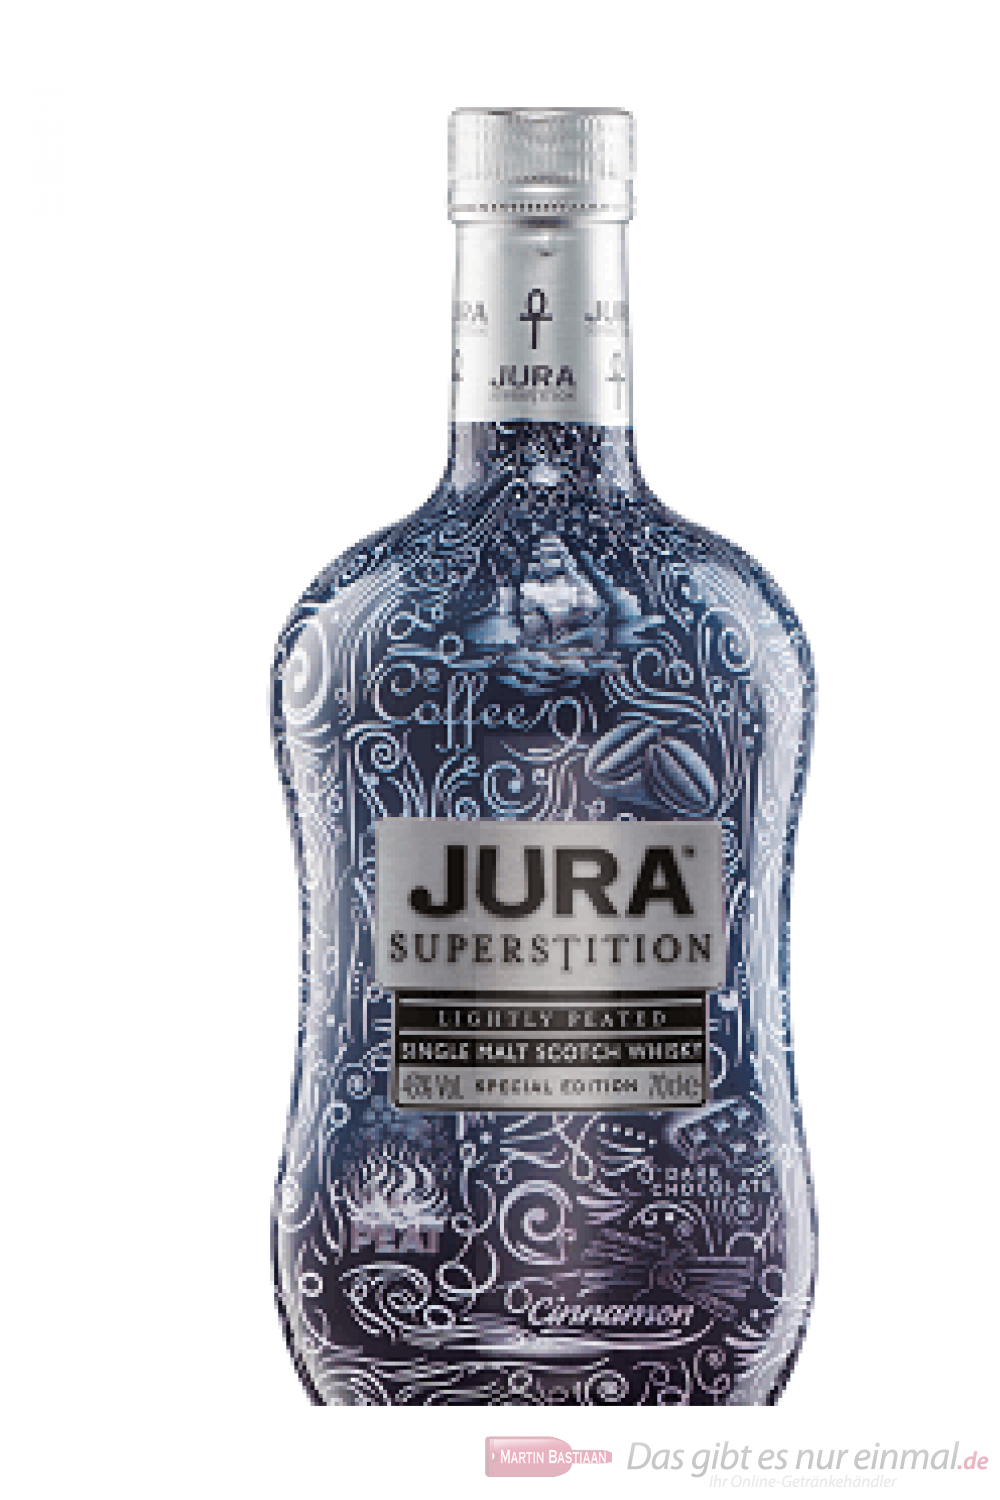 Isle of Jura Superstition Sleve Tattoo Limited Edition Scotch Whisky 0,7l